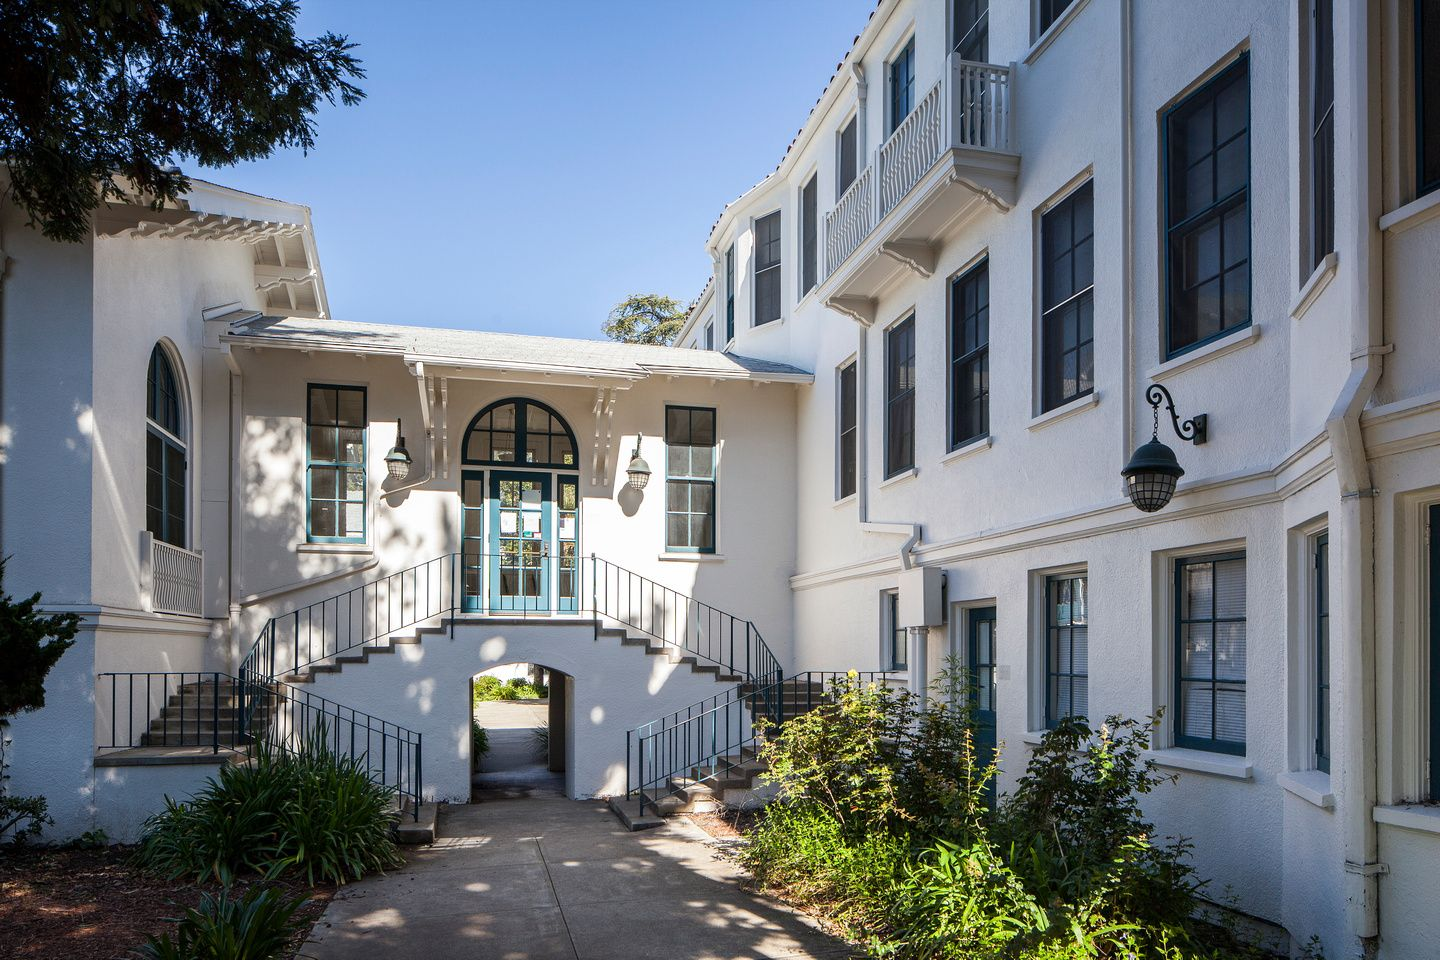 Olney Hall and walkway through underpass to courtyard shared with ...